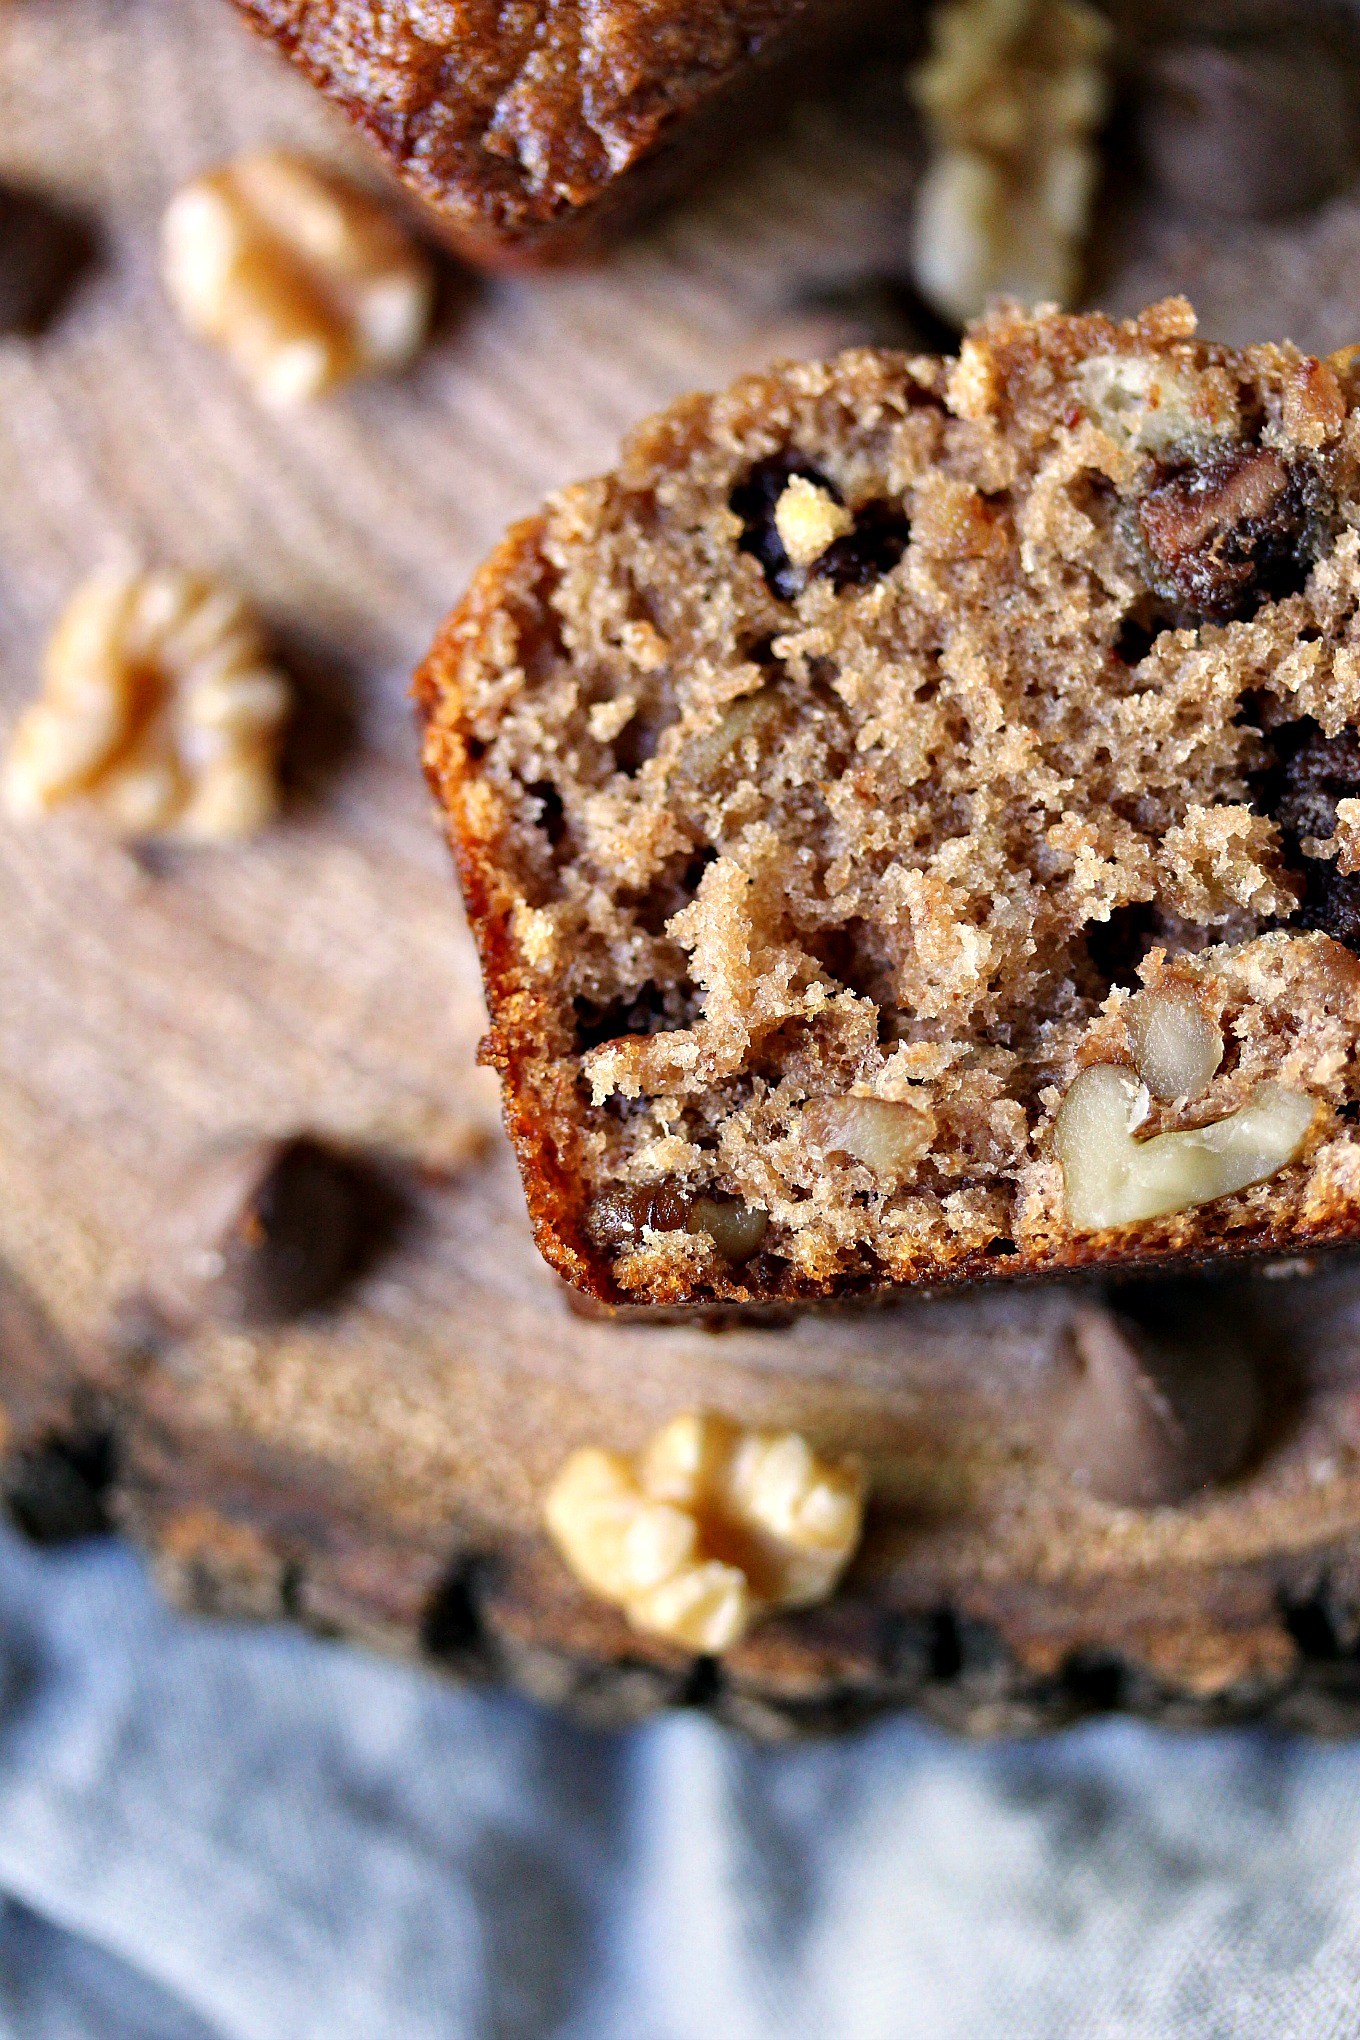 peanut butter chocolate banana bread is made with Reese's peanut ...